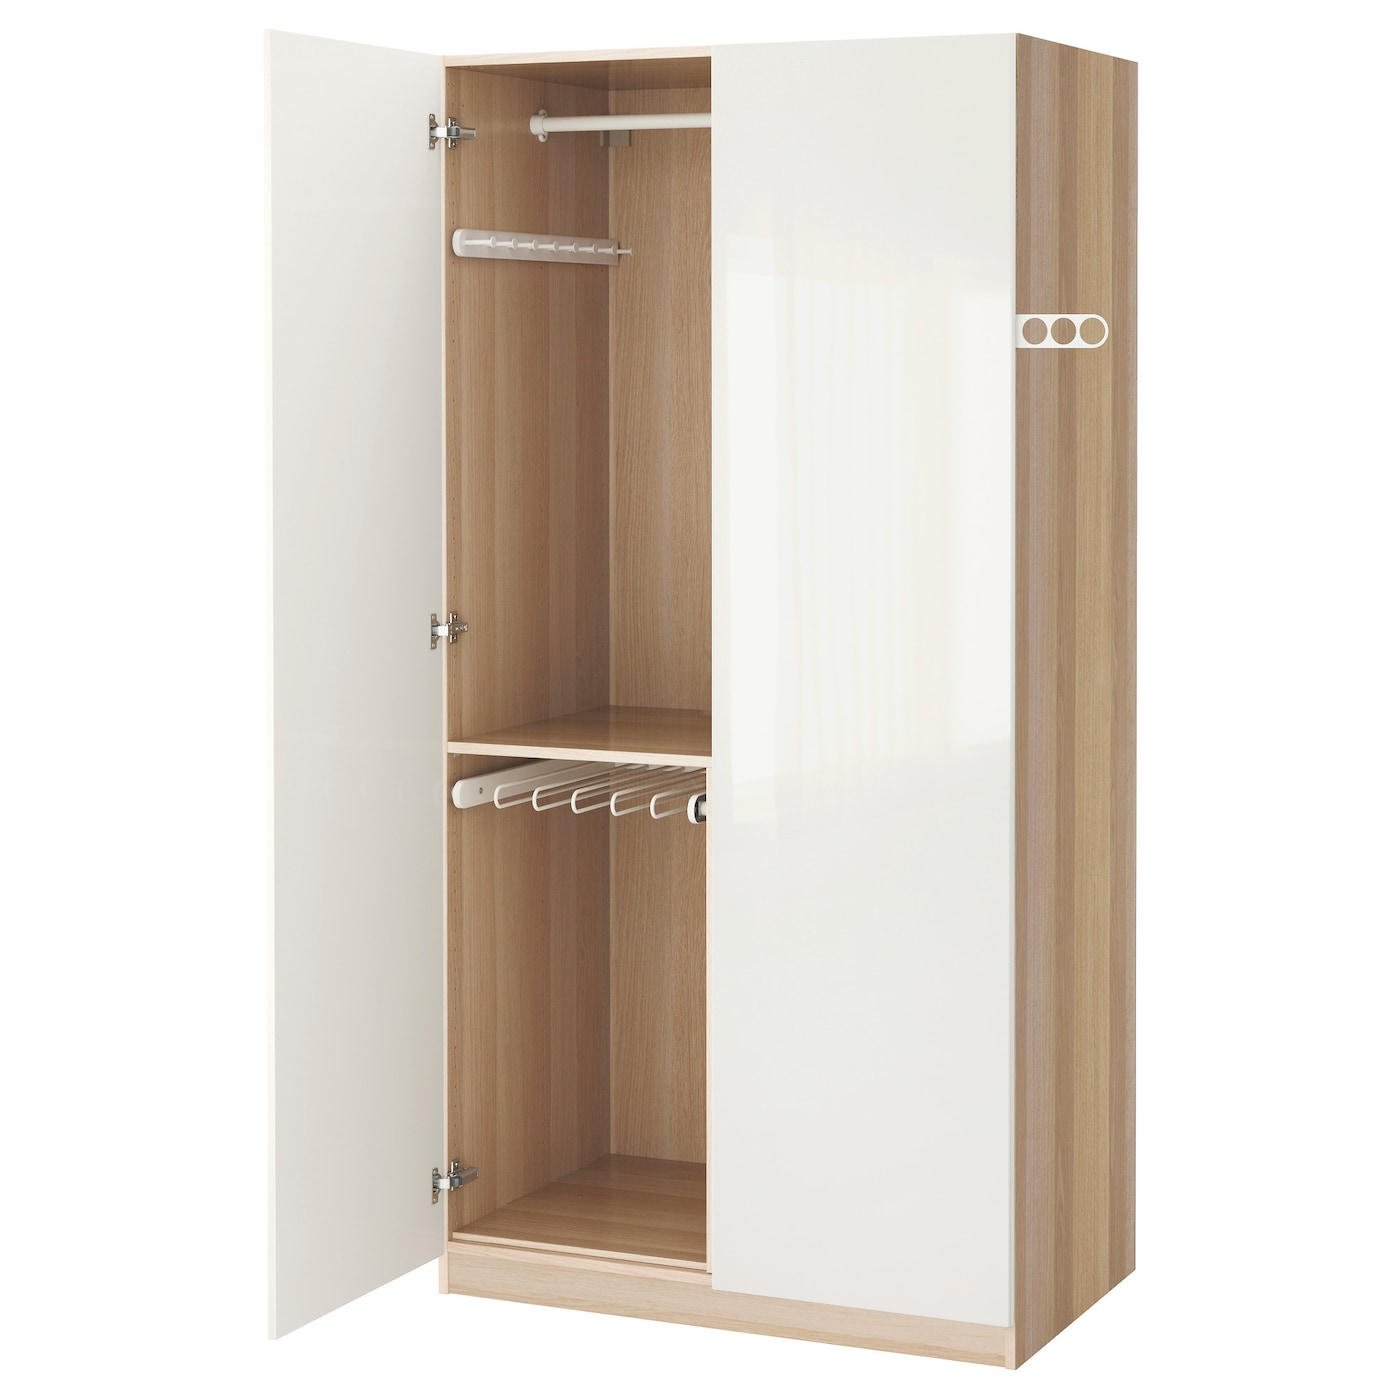 11 sparen kleiderschrank pax von ikea ab 313 99 cherry m bel ikea. Black Bedroom Furniture Sets. Home Design Ideas